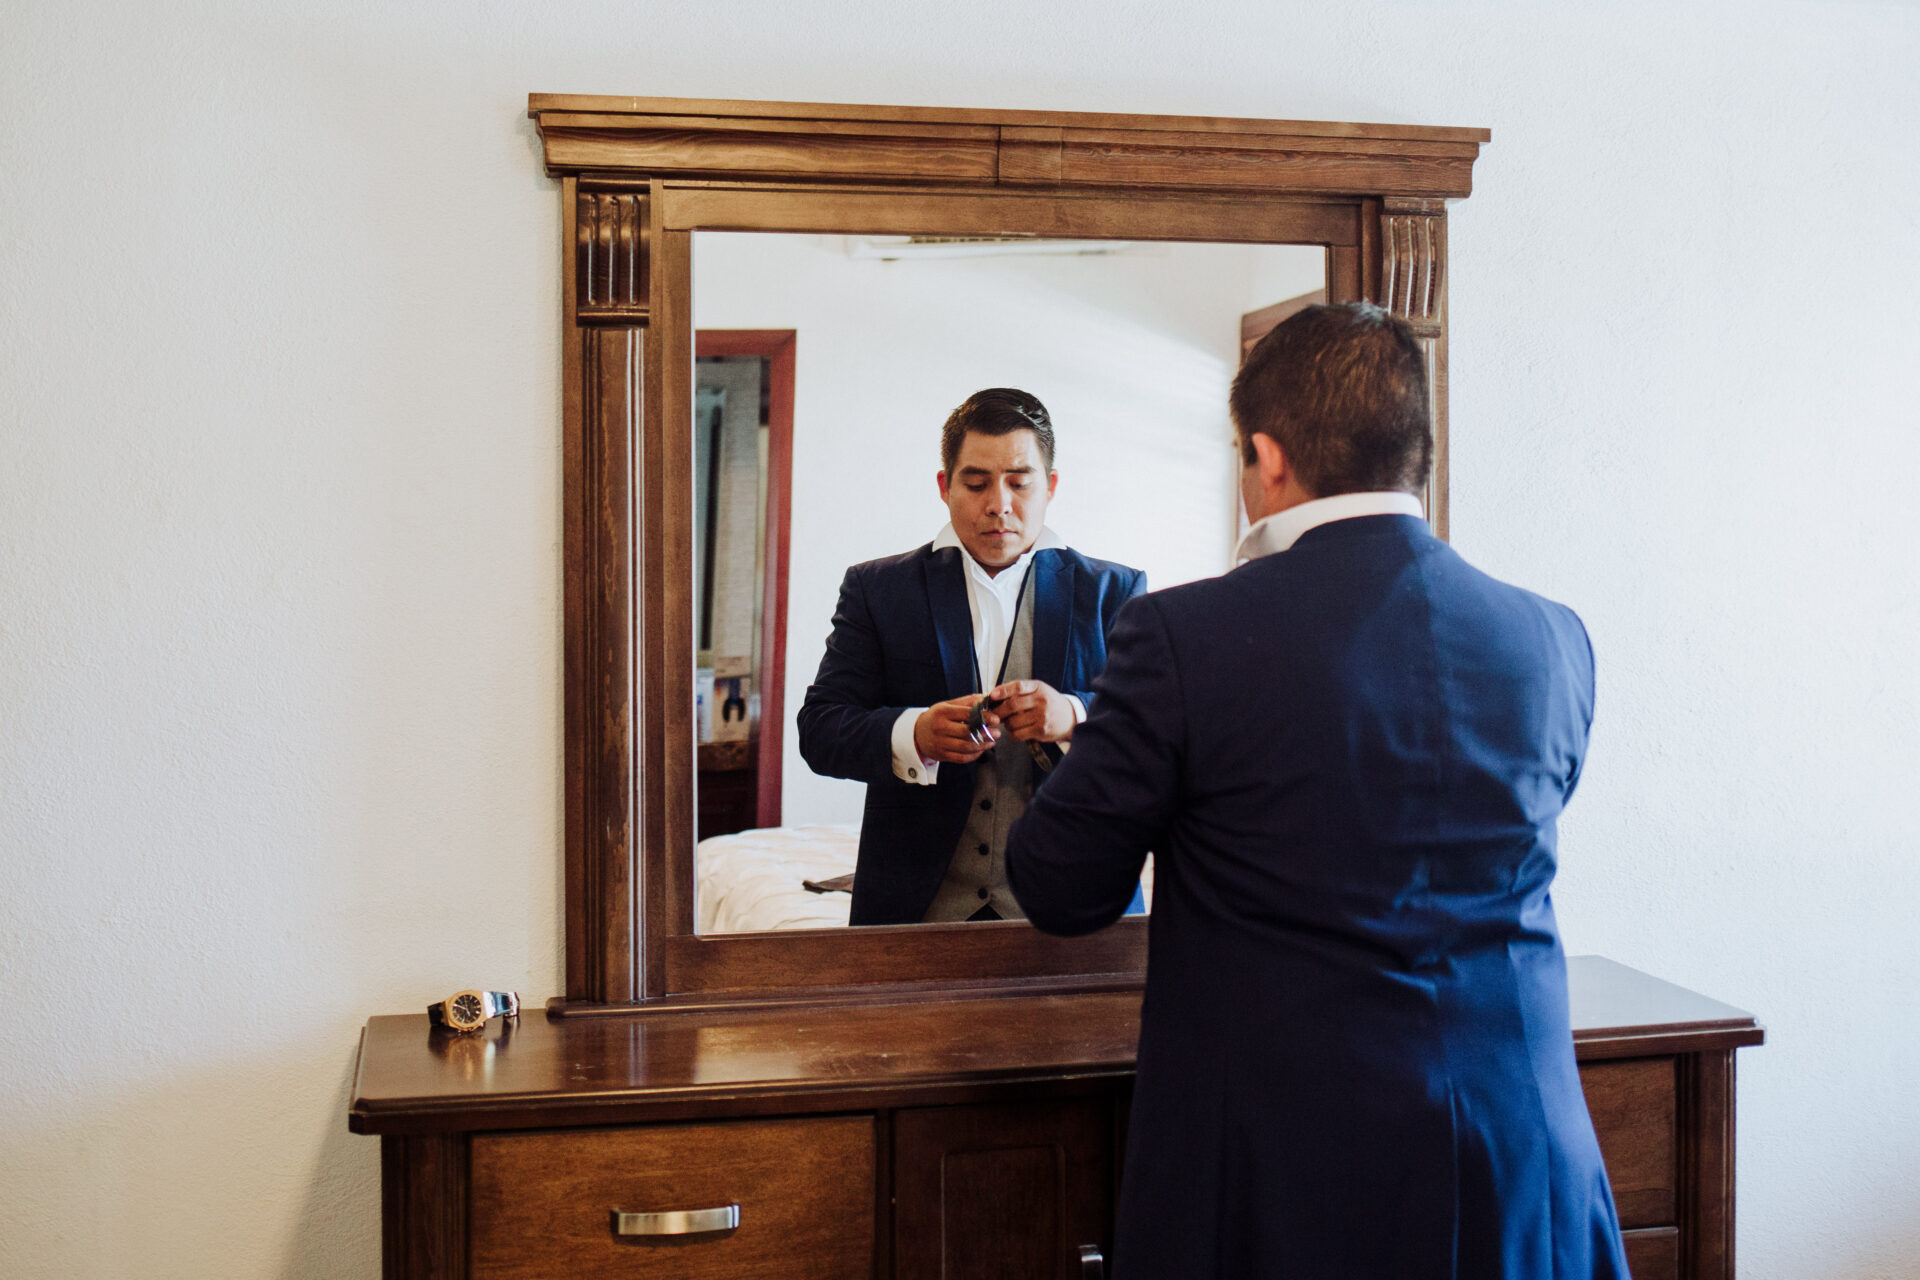 javier_noriega_fotografo_bodas_torreon_coahuila_zacatecas_wedding_photographer10a